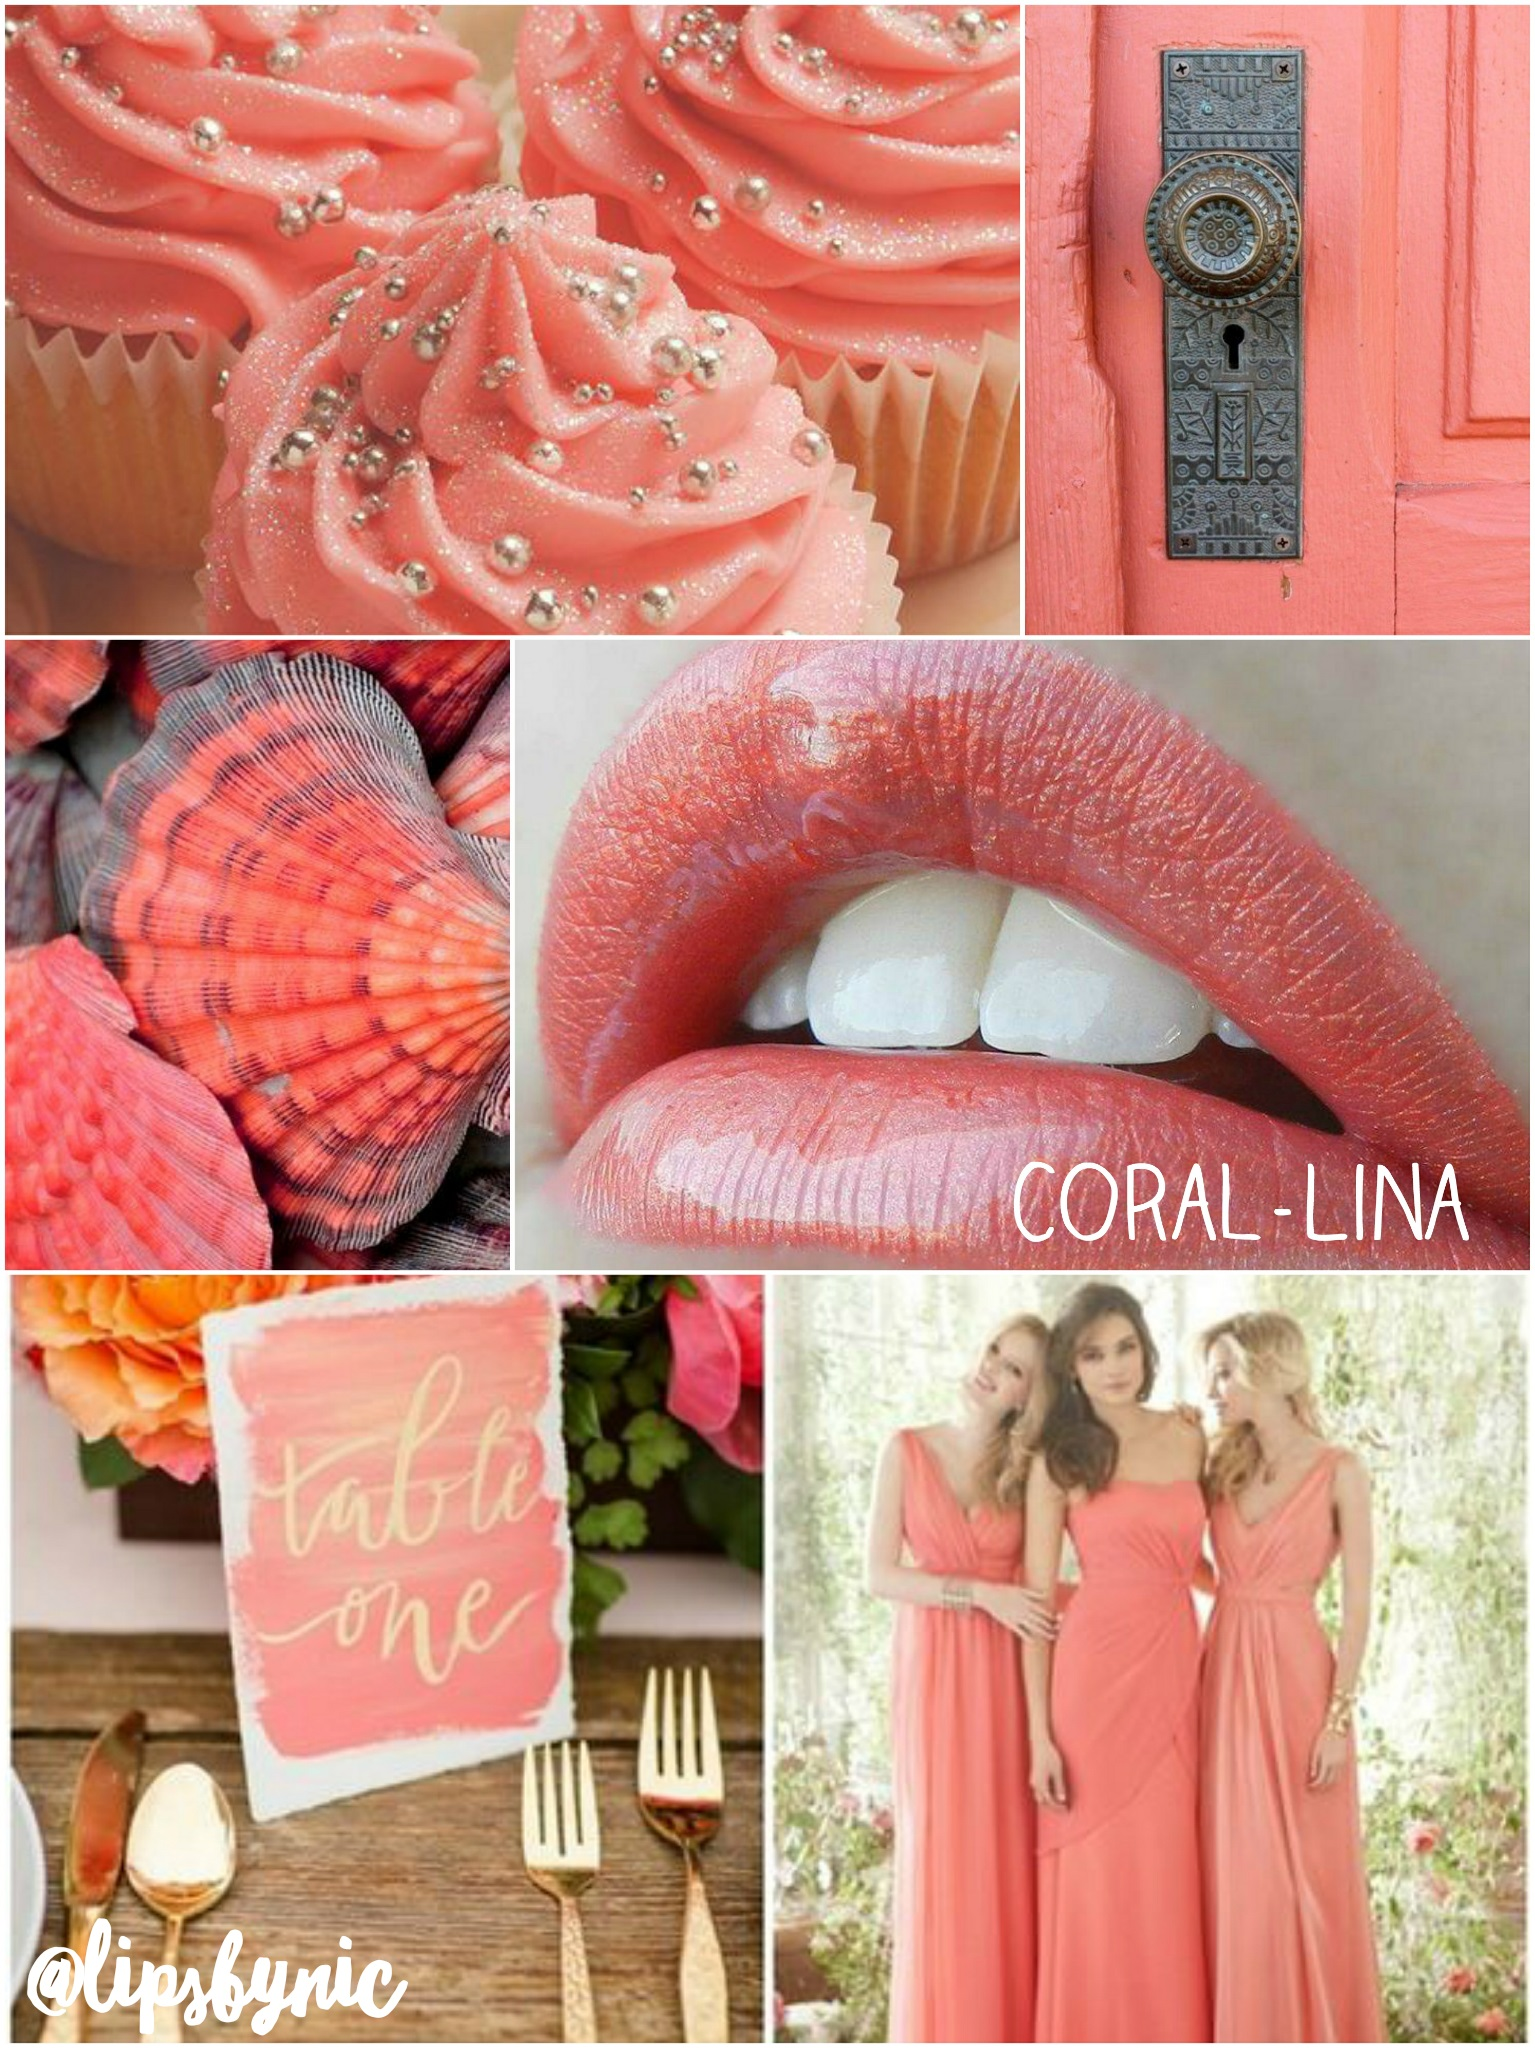 Coral-Lina Collage